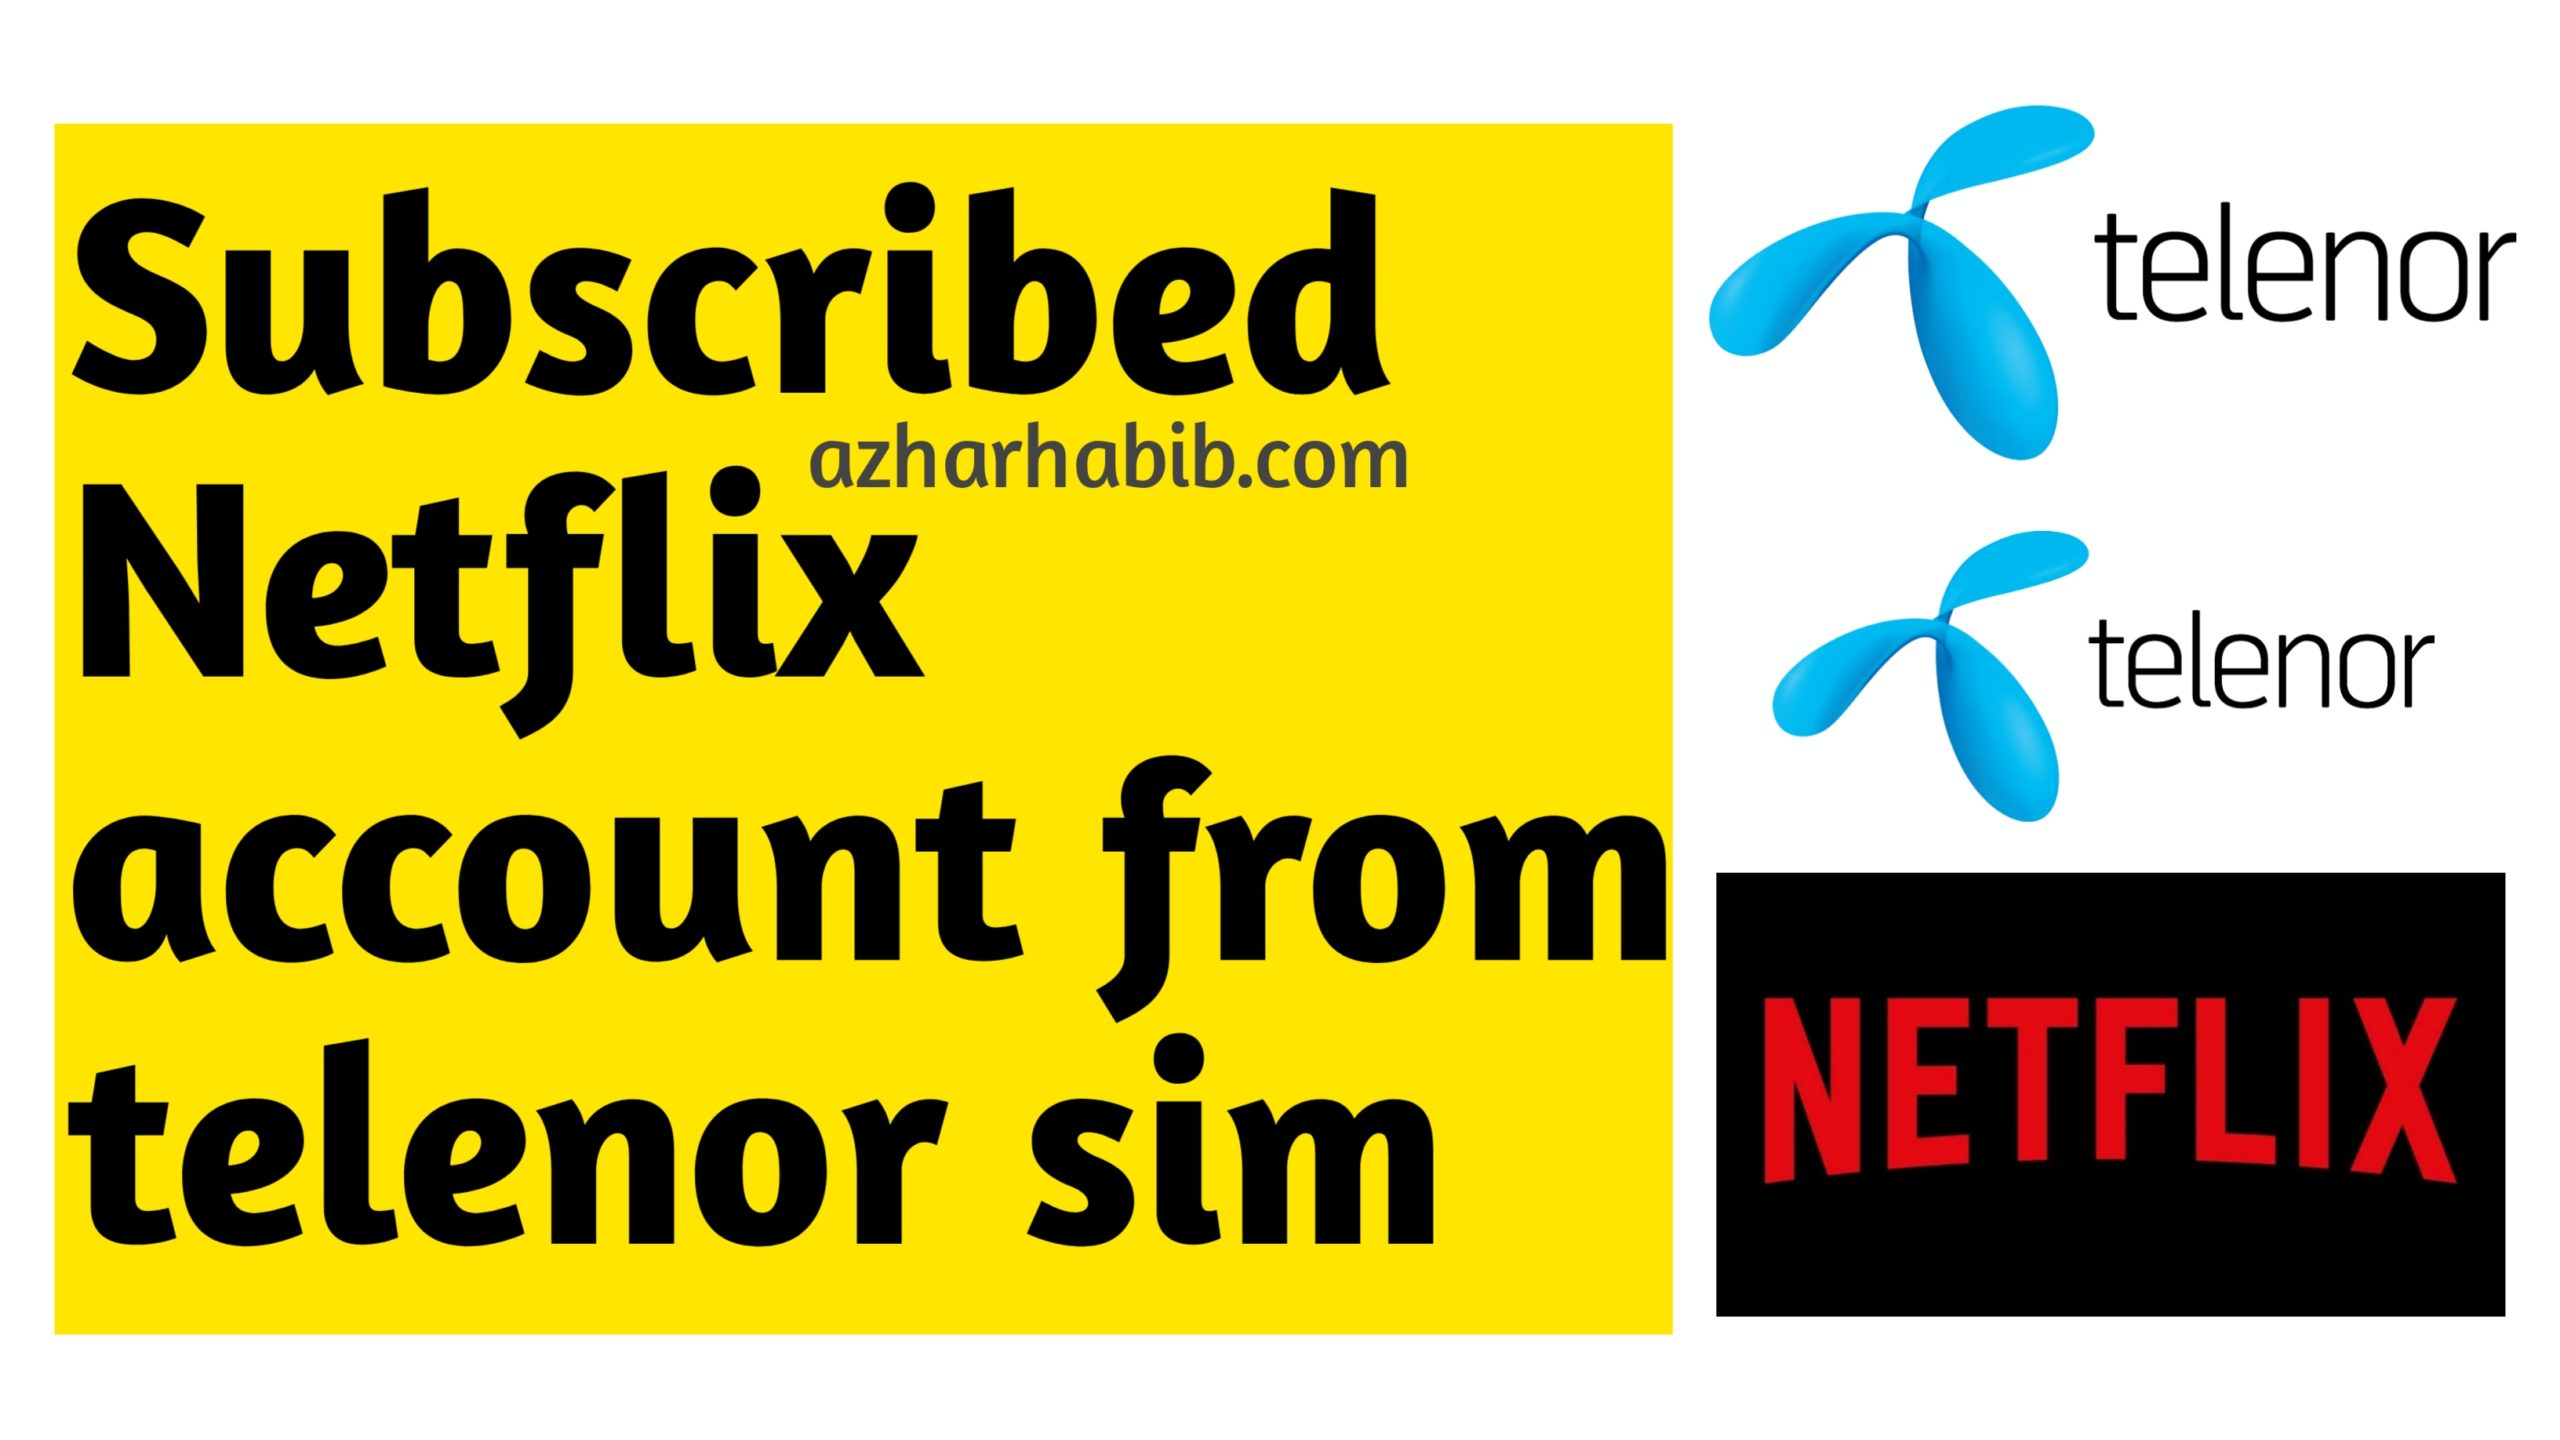 How to subscribe to Netflix through Telenor sim